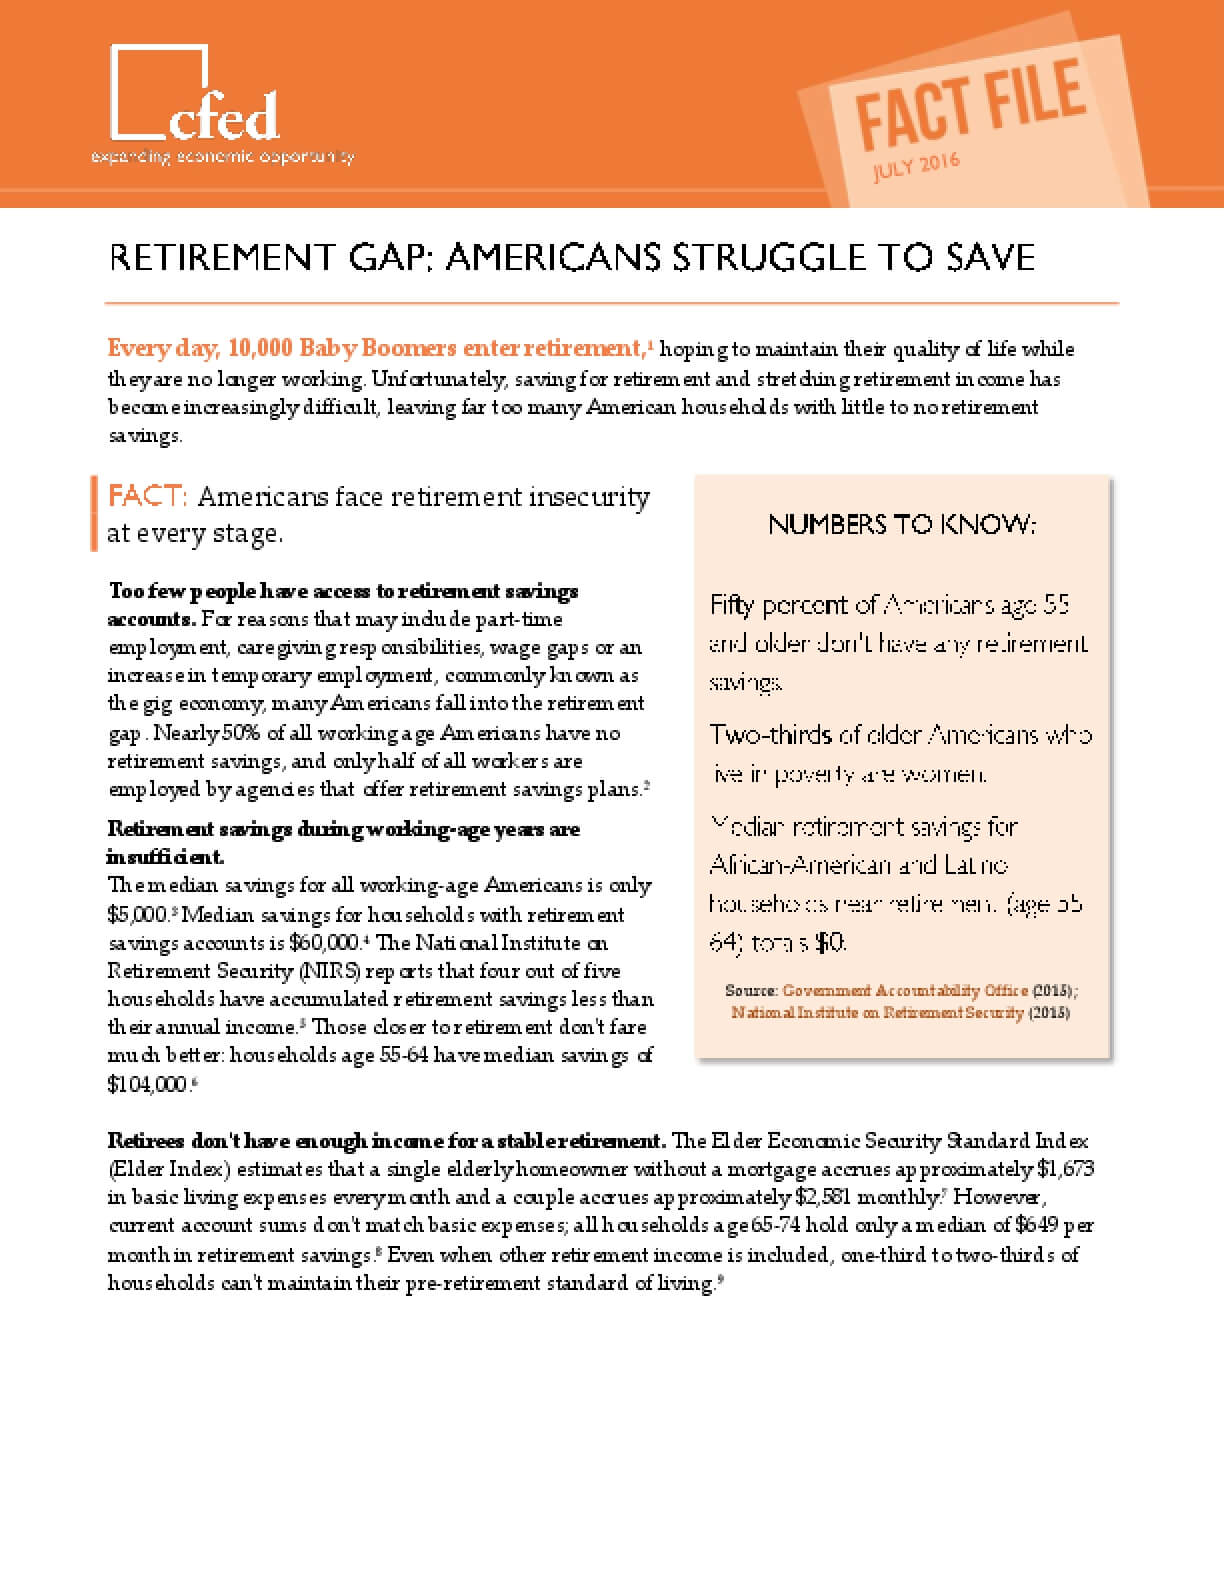 Retirement Gap: Americans Struggle to Save